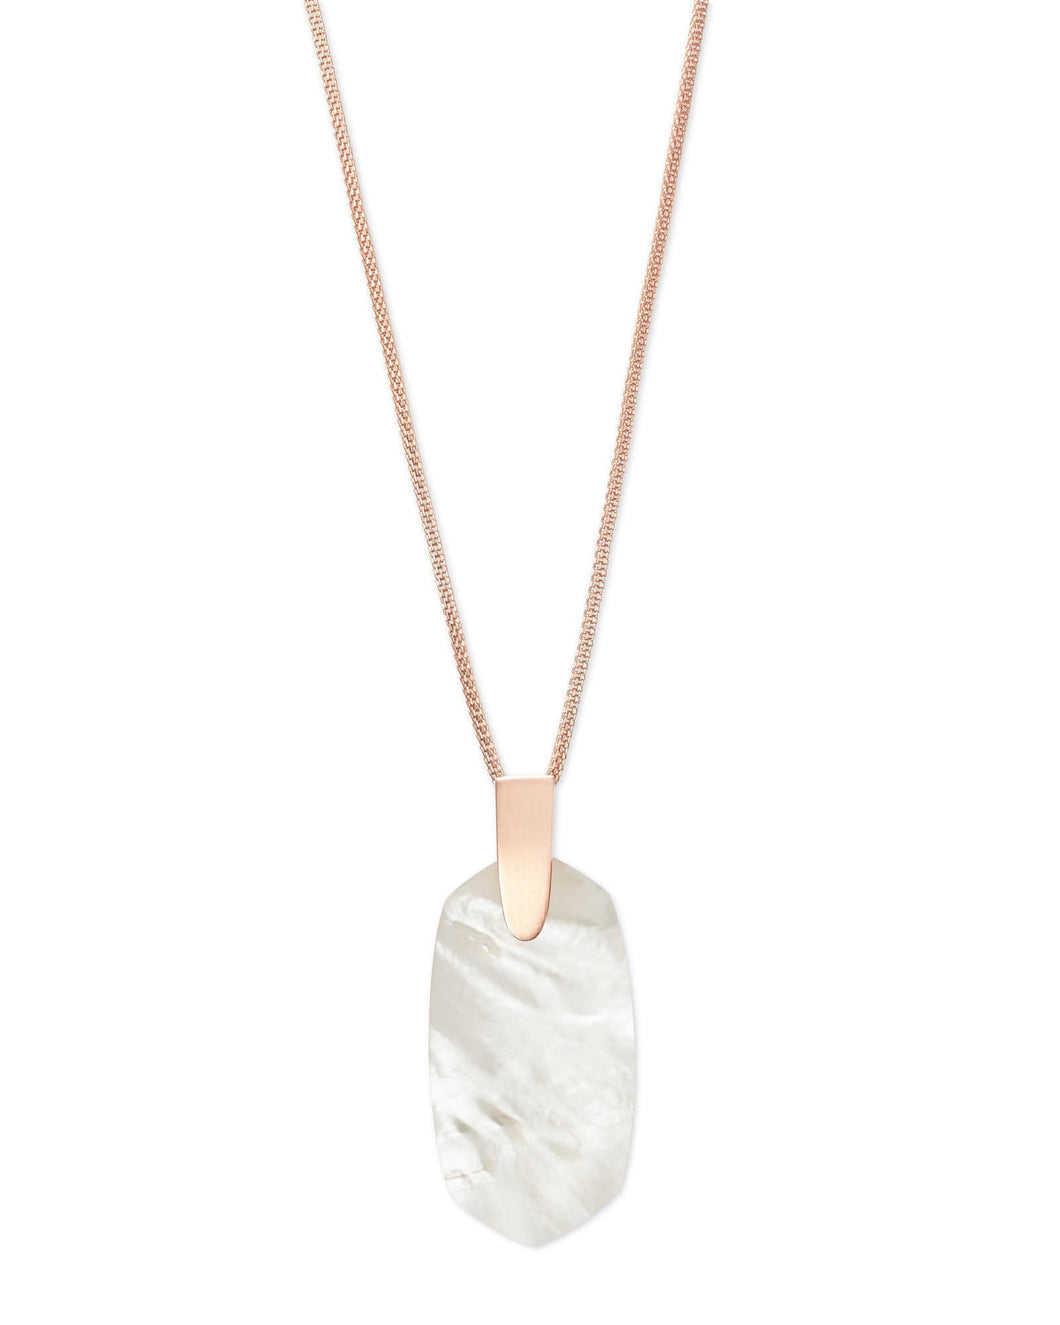 Inez Rose Gold Pendant Necklace-Ivory Mother of Pearl